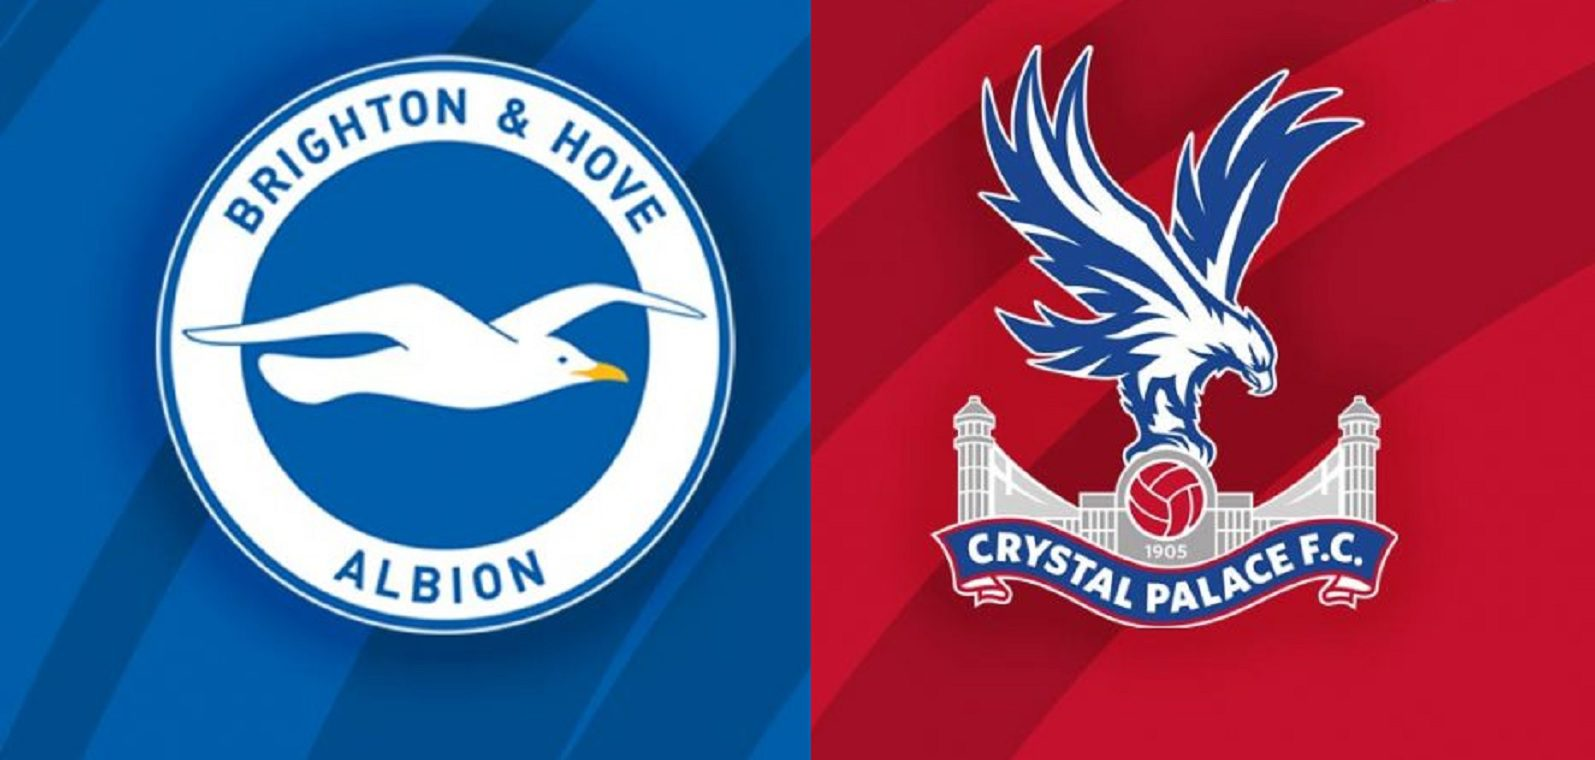 Crystal Palace vs Brighton Line Up for Upcoming Premier League Match